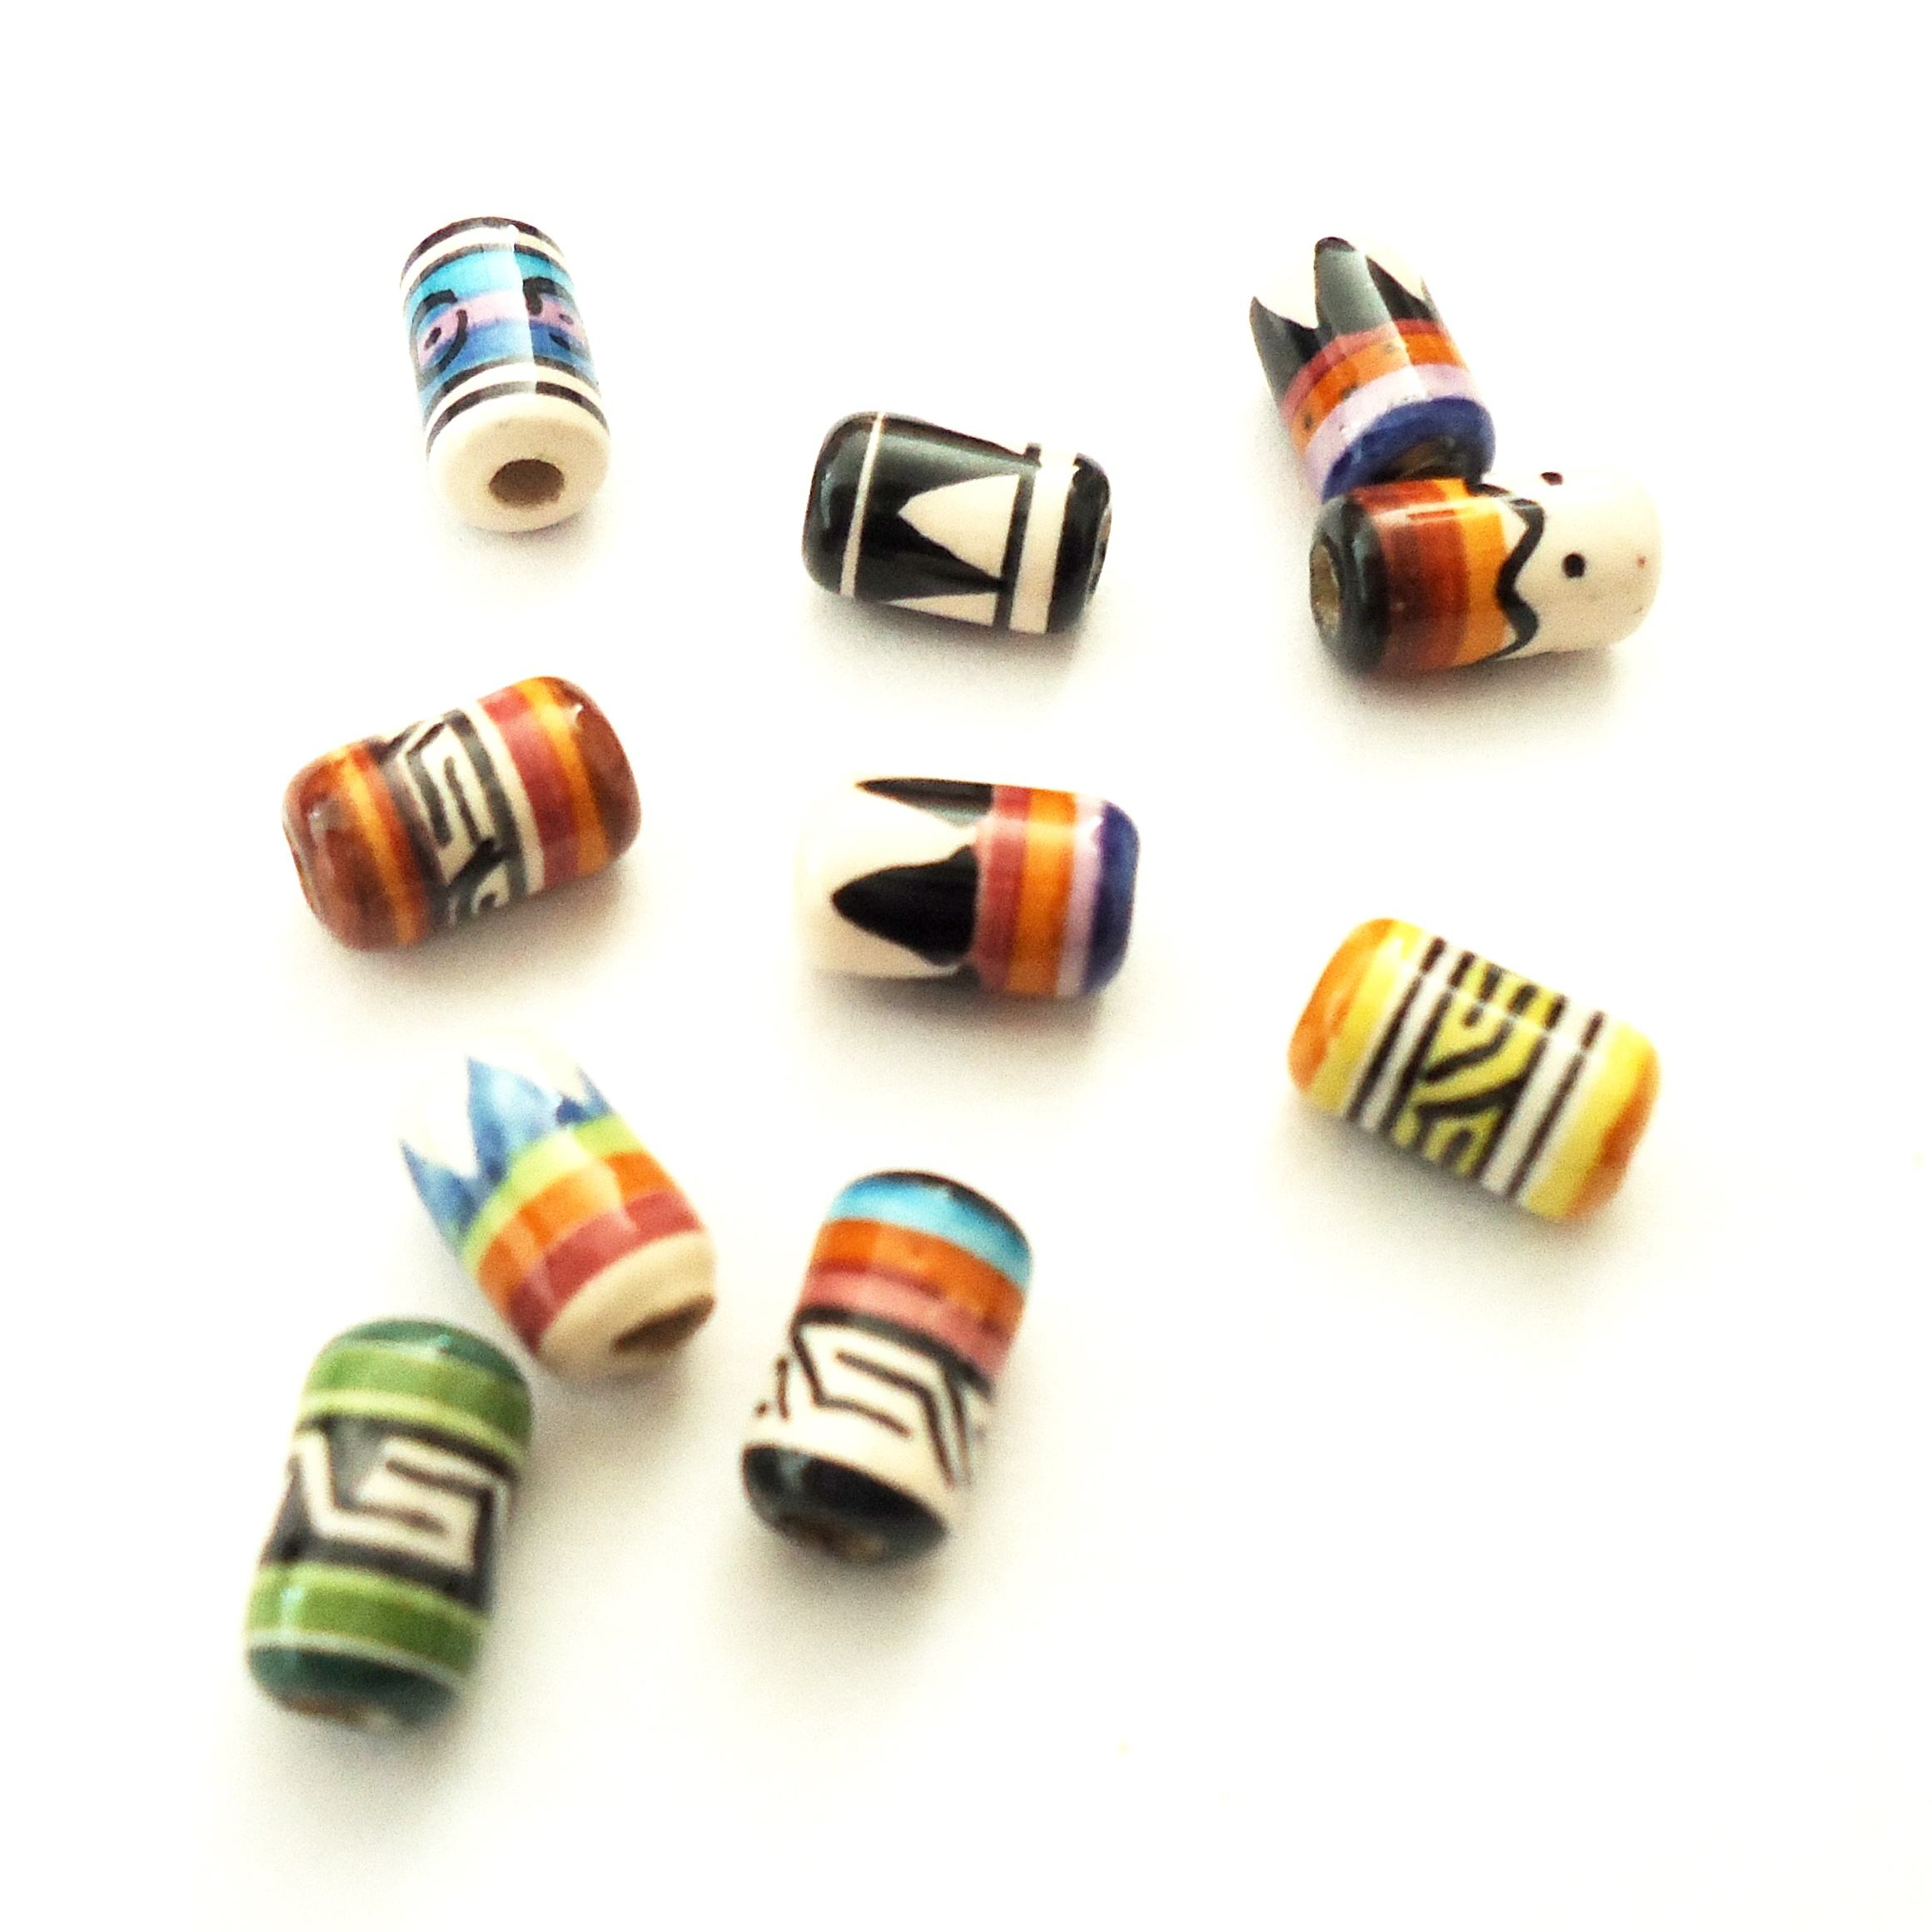 Wholesale Peruvian hand painted pattern design beads for jewelry, Hand painted tube shaped ceramic beads